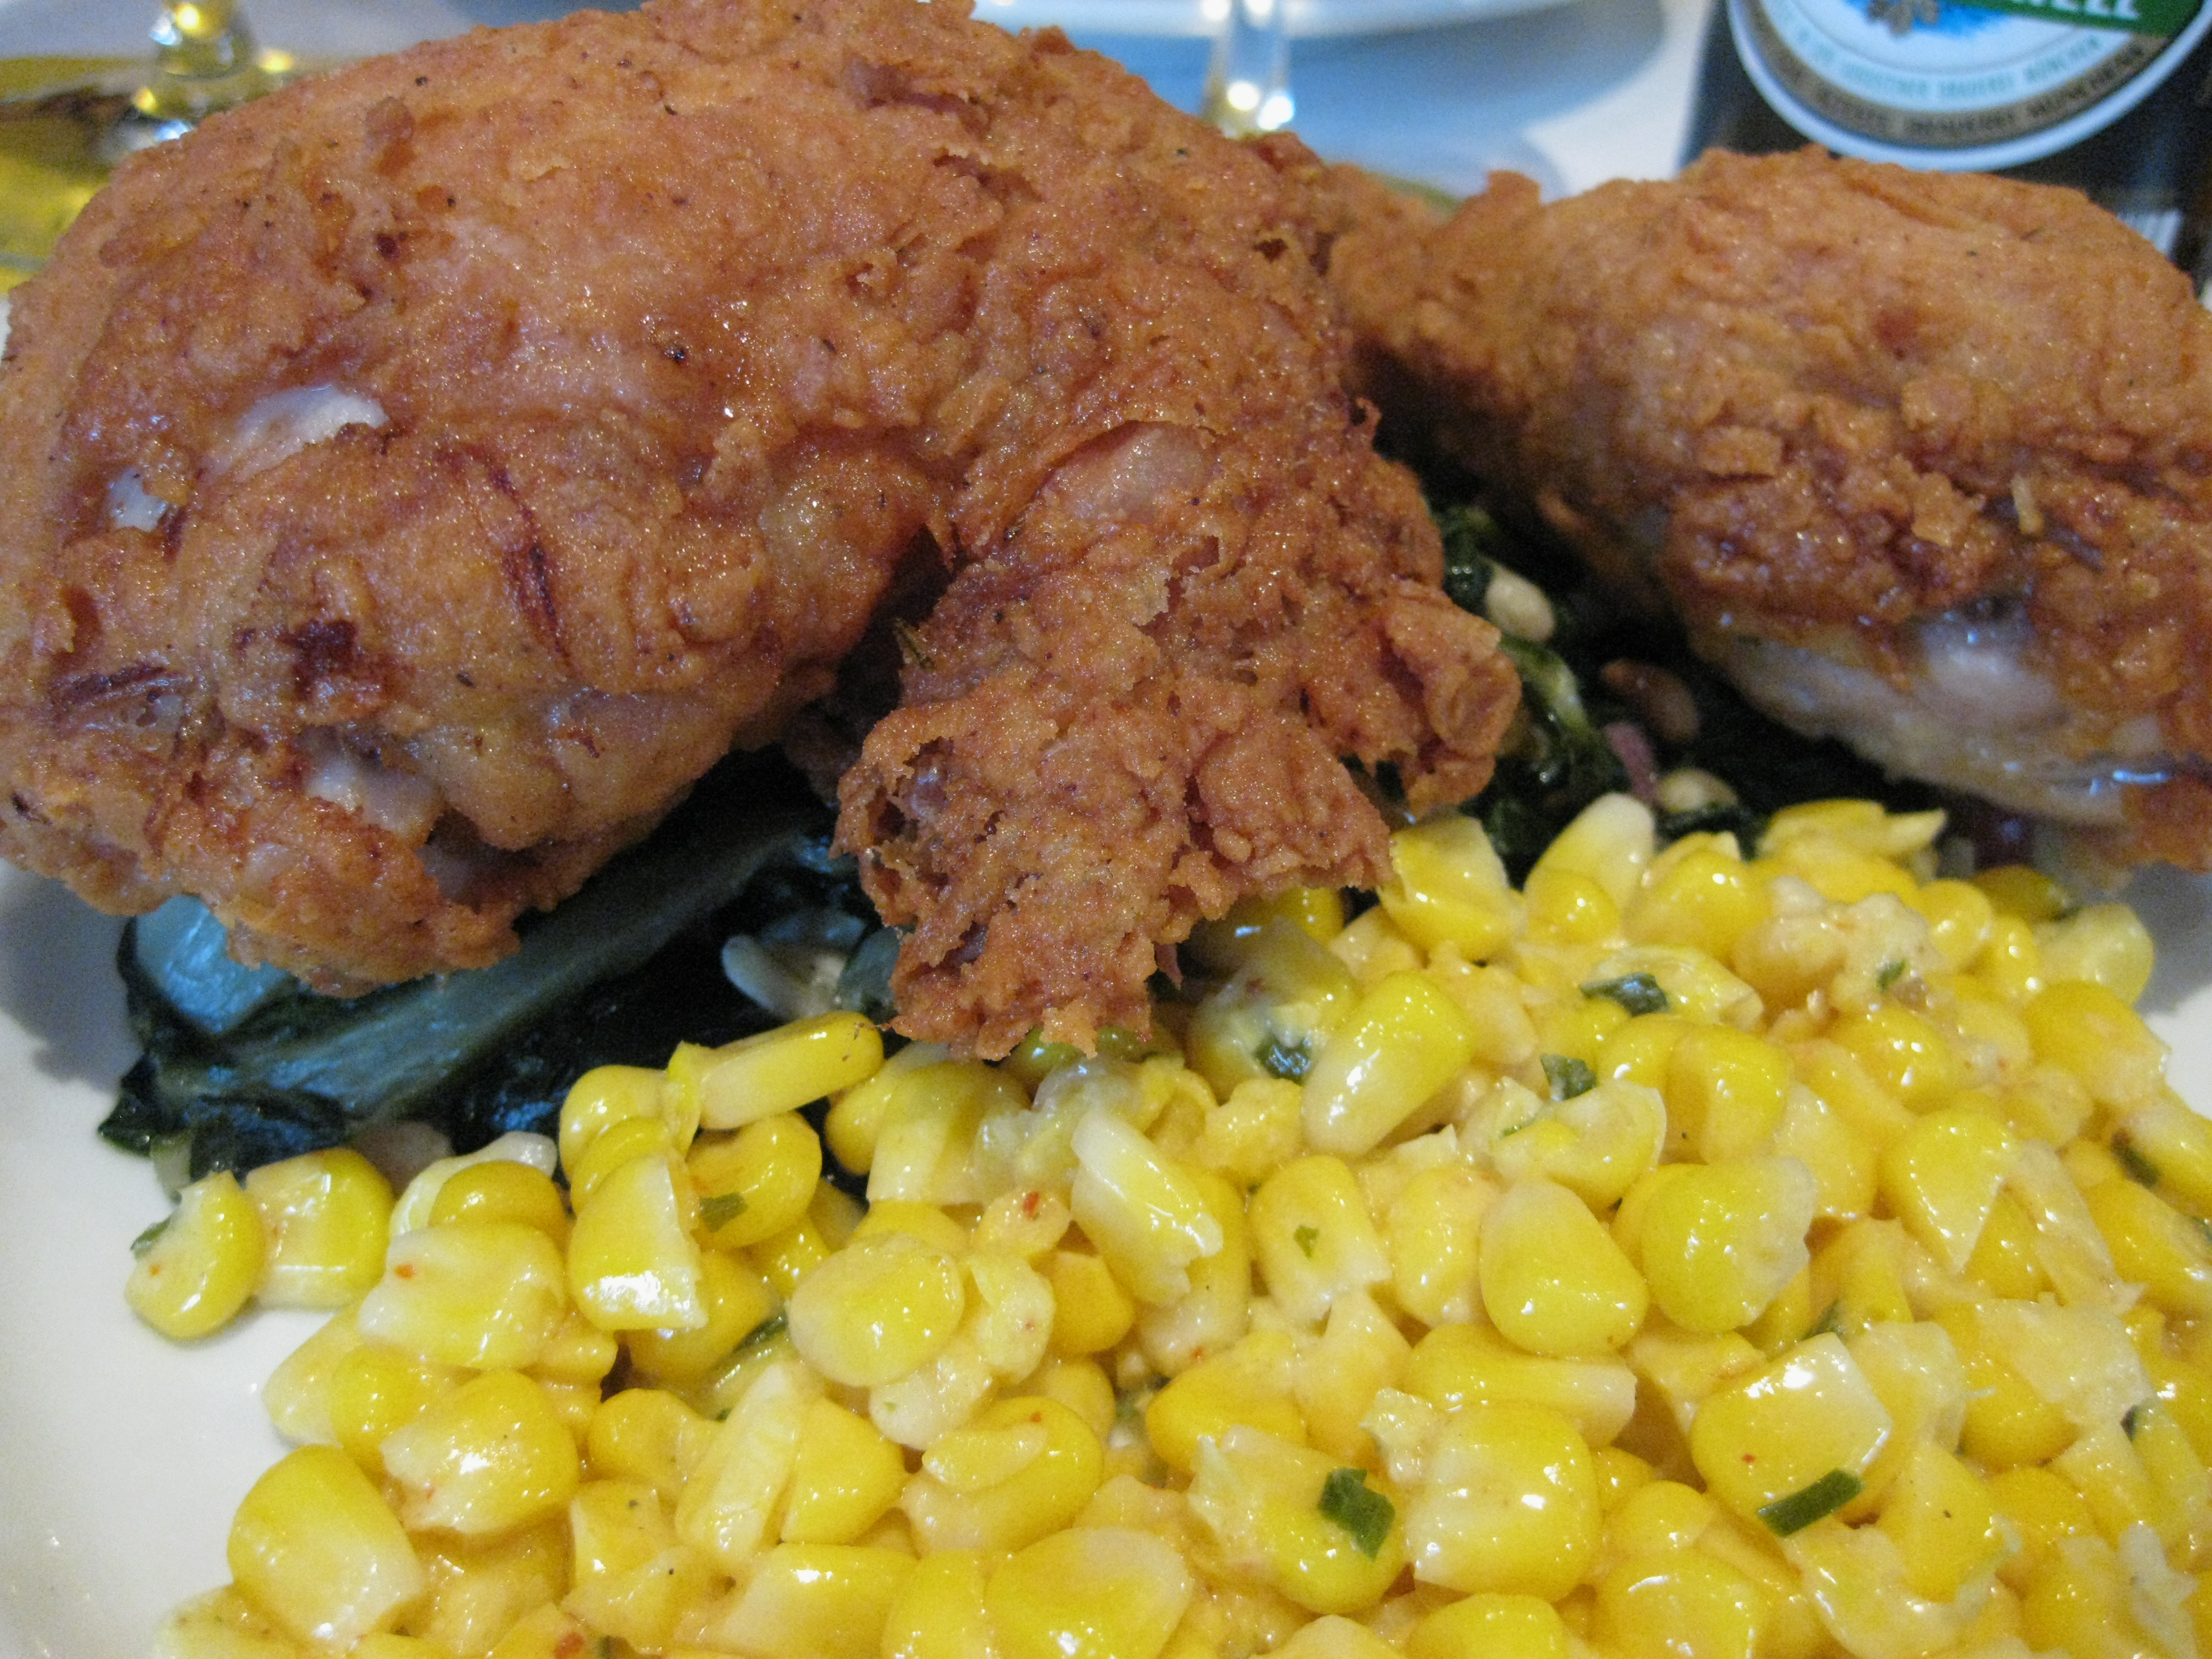 Fried chicken on the menu for the first pop-up beer lunch on January 20.